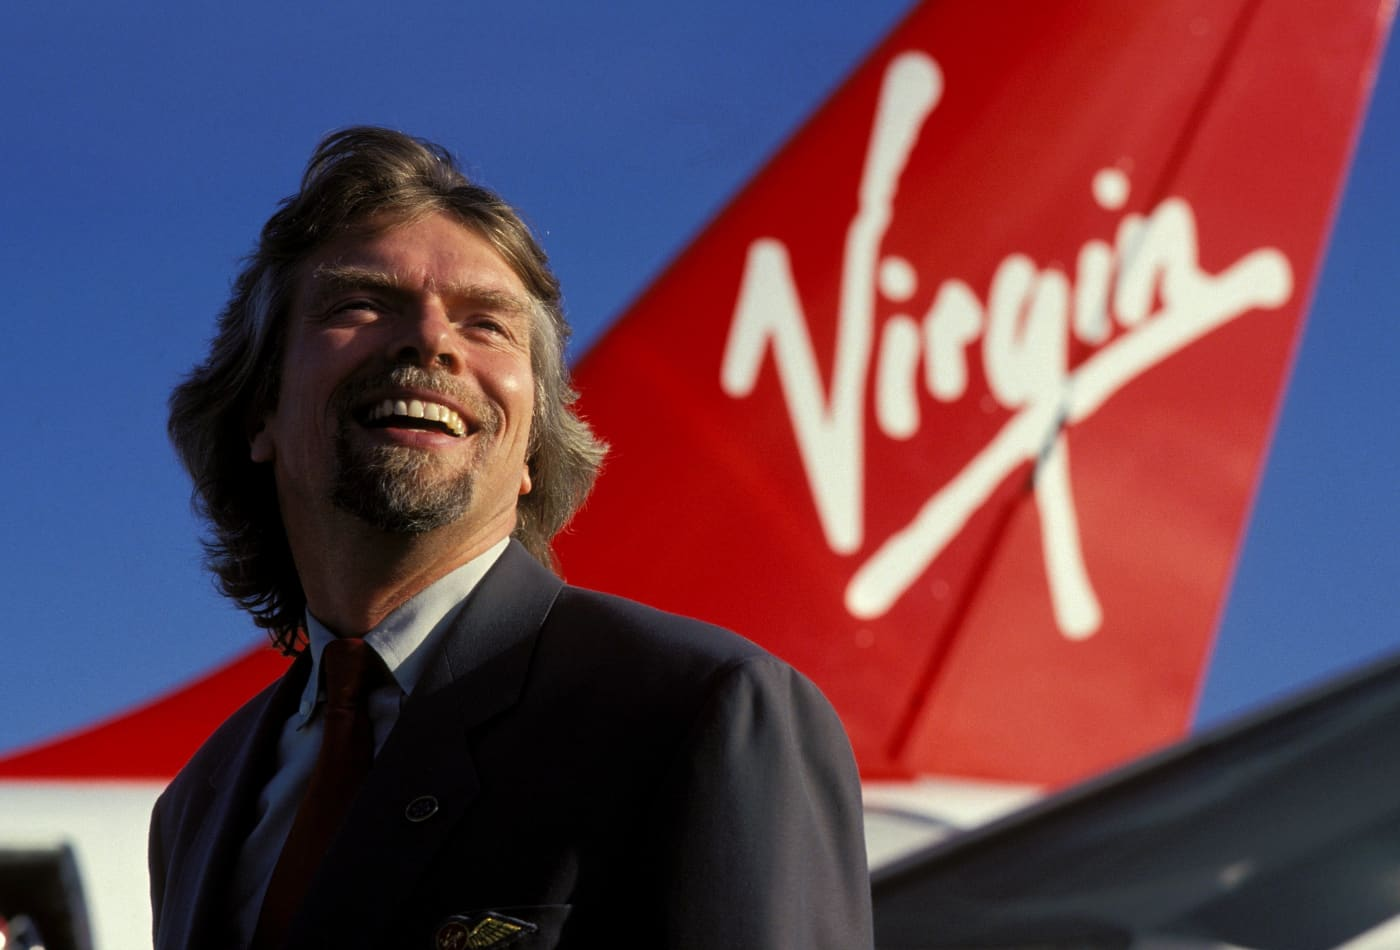 Richard Branson's airline won $945,000 and it all went to